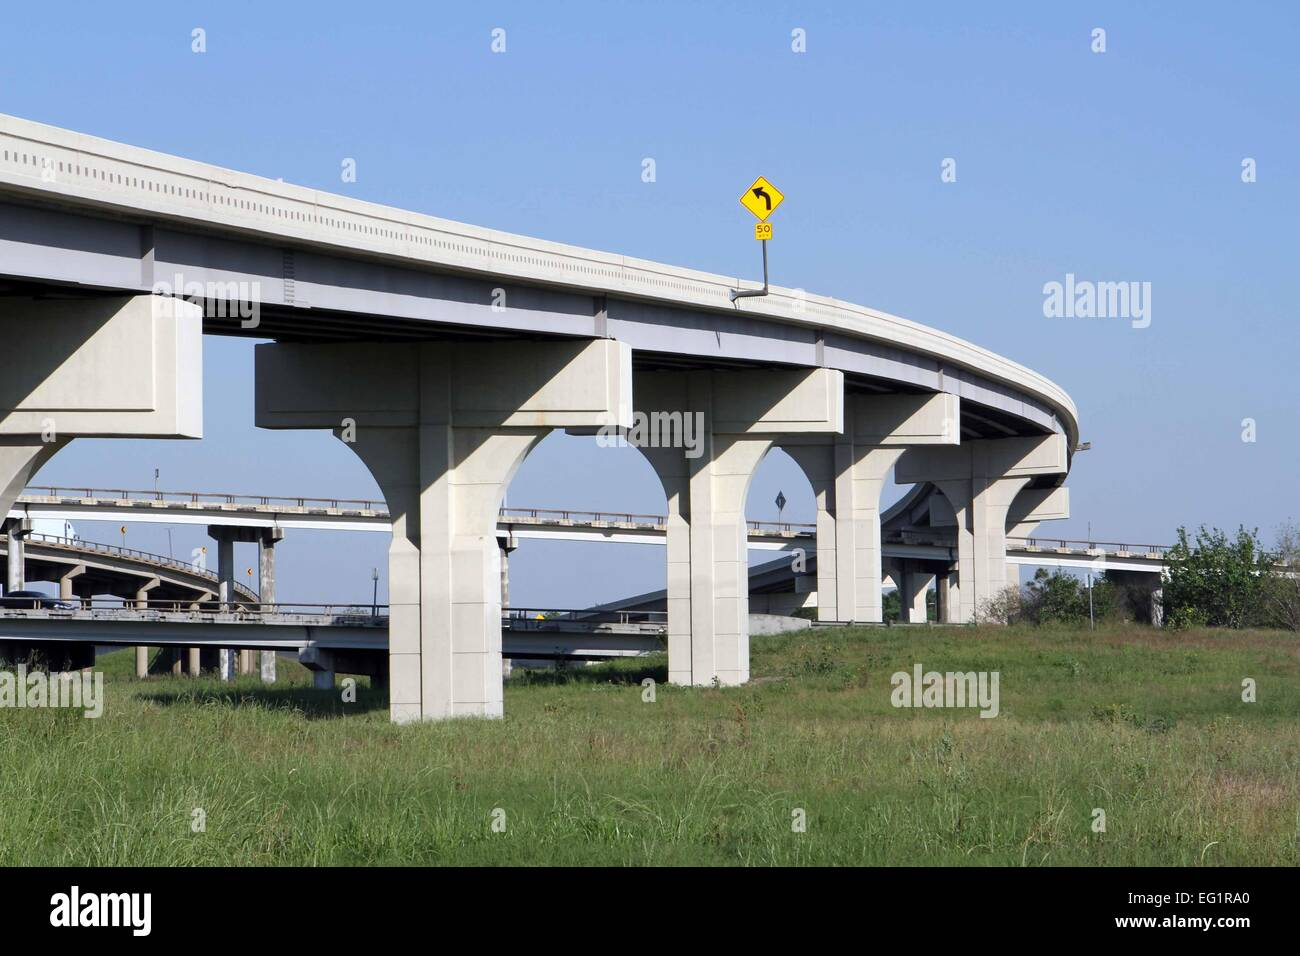 ROADS AND OVERPASSES IN THE CITY OF HOUSTON, TEXAS, USA - Stock Image